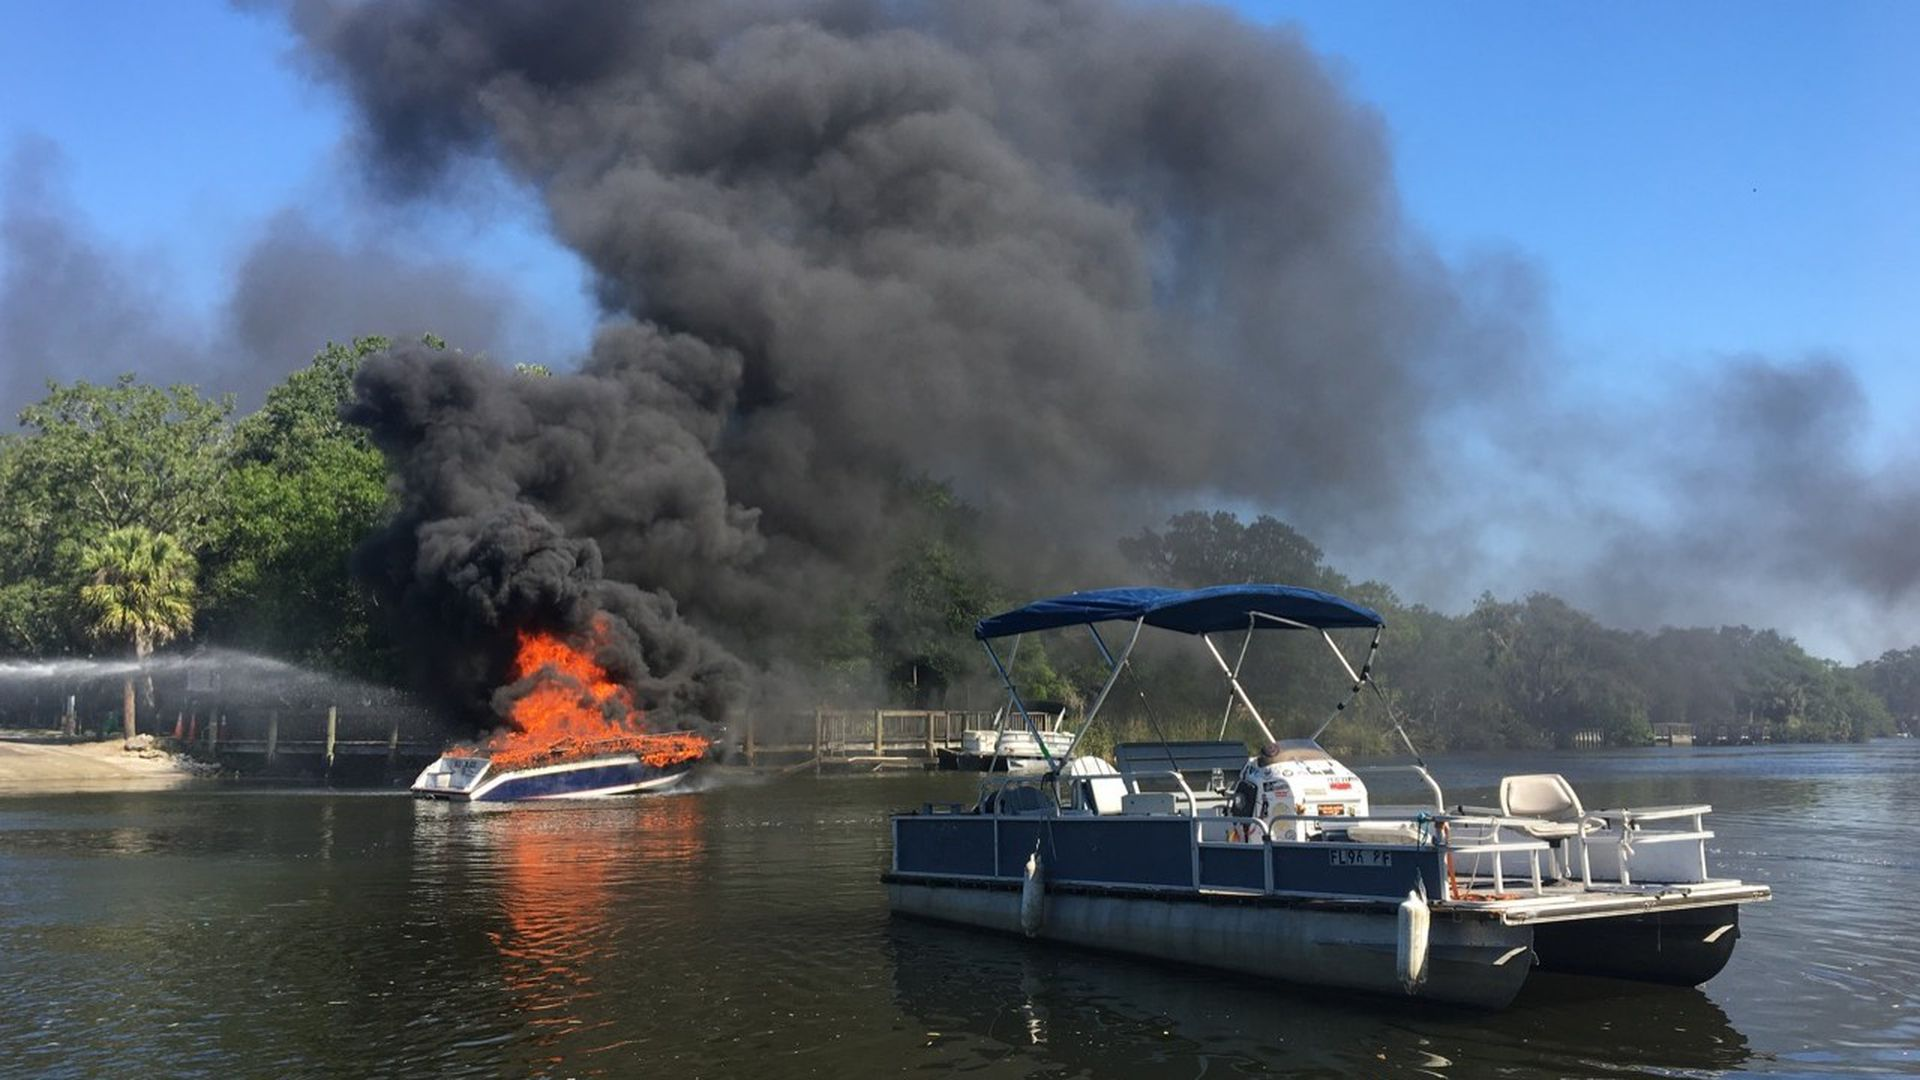 A boat up in flames on the water, with black smoke billowing overhead and another boat nearby